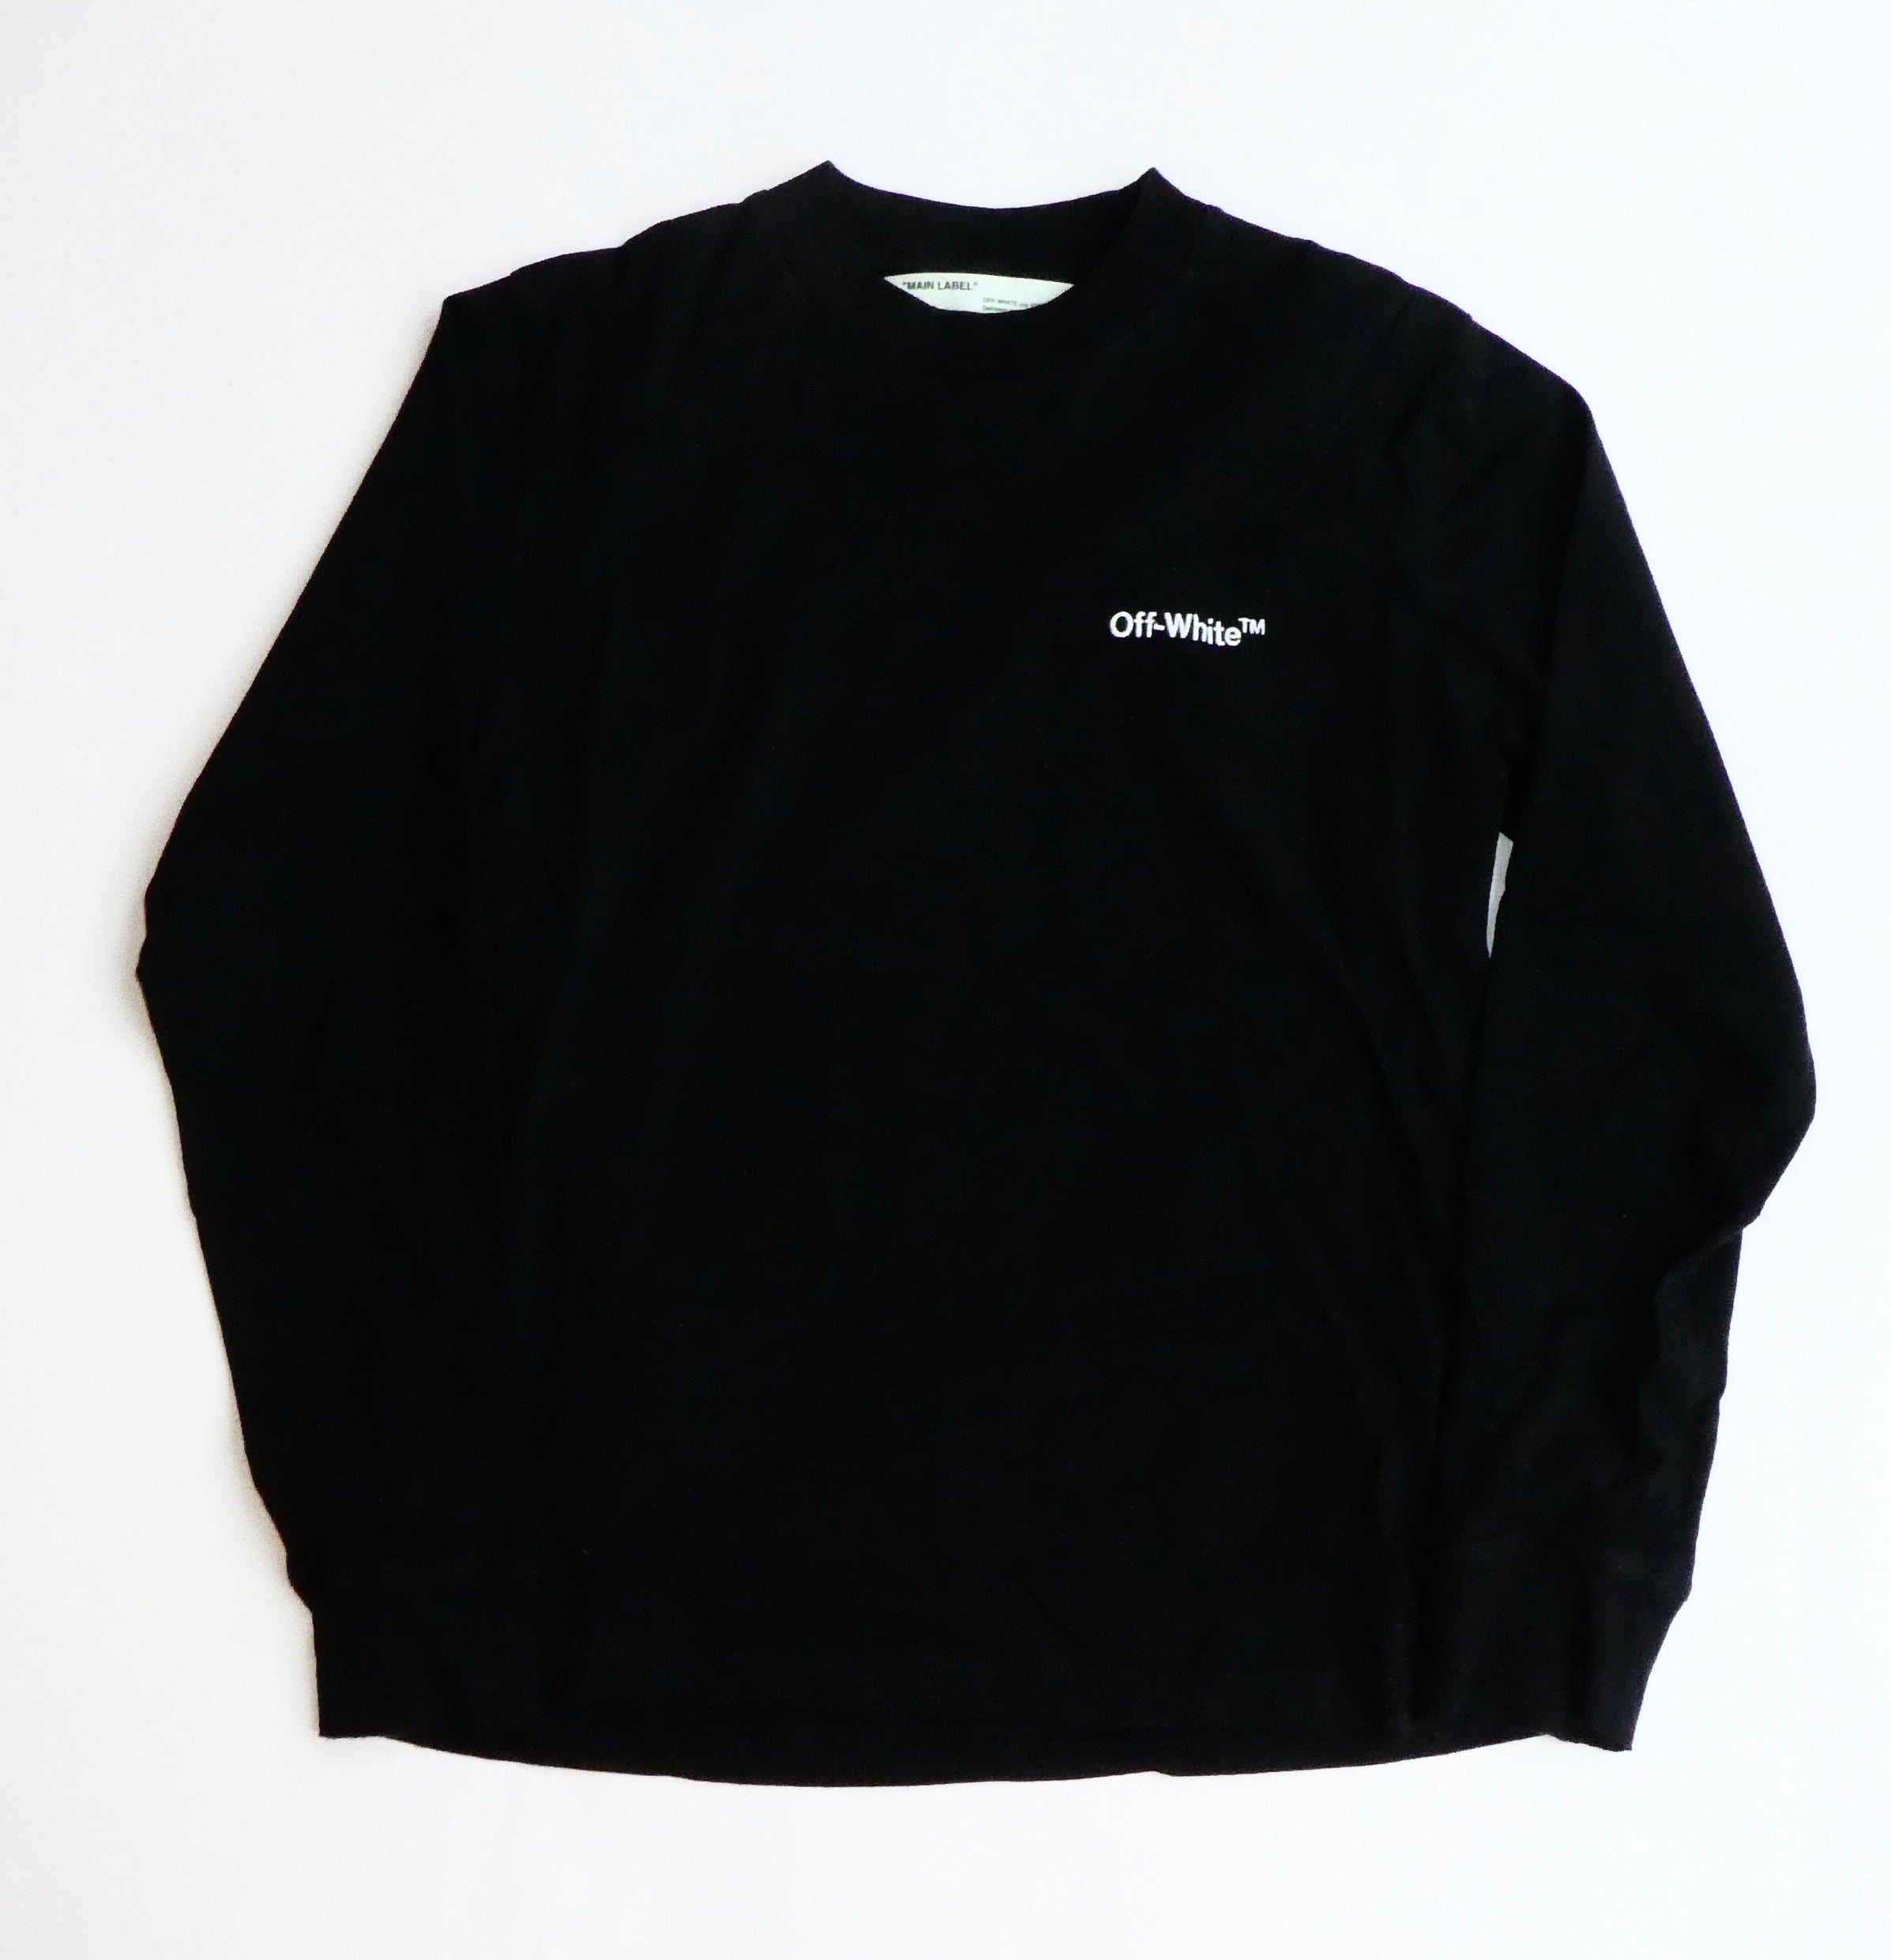 Off White Classic Logo Longsleeve T Shirt - Small